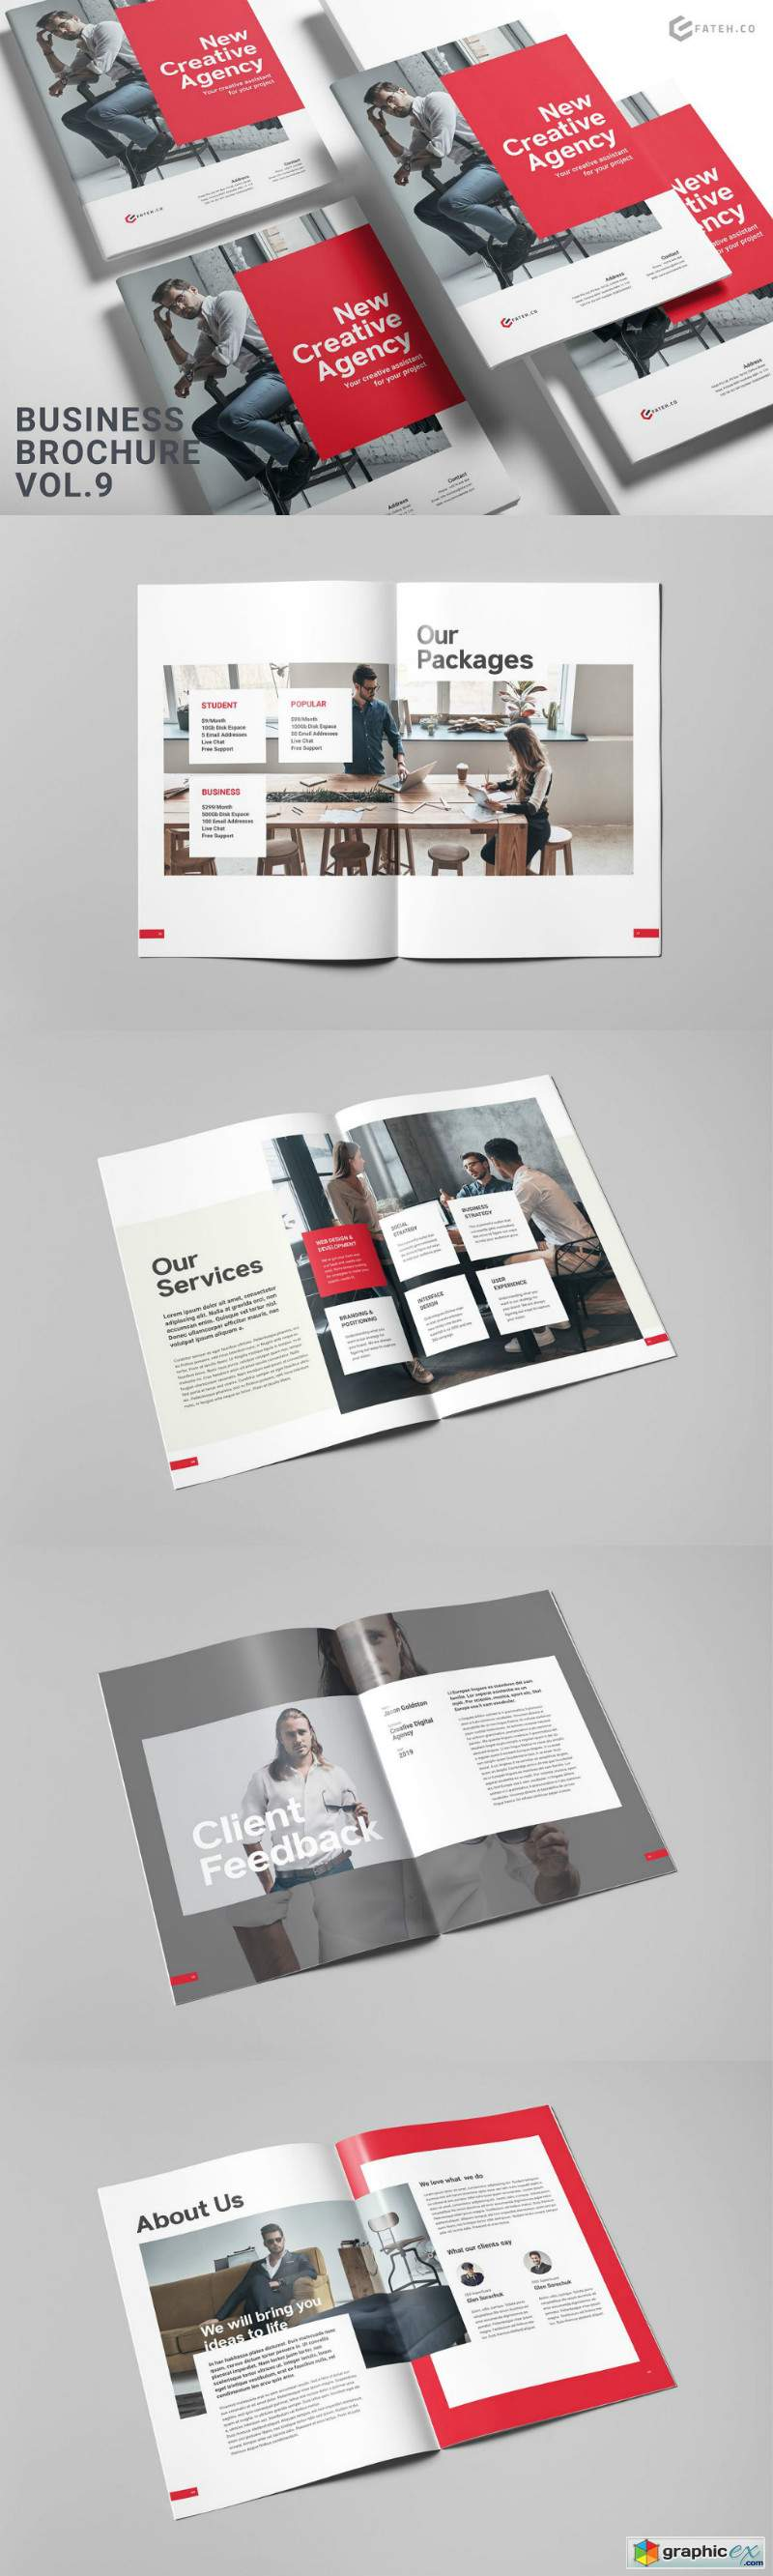 Business Brochure Vol.9